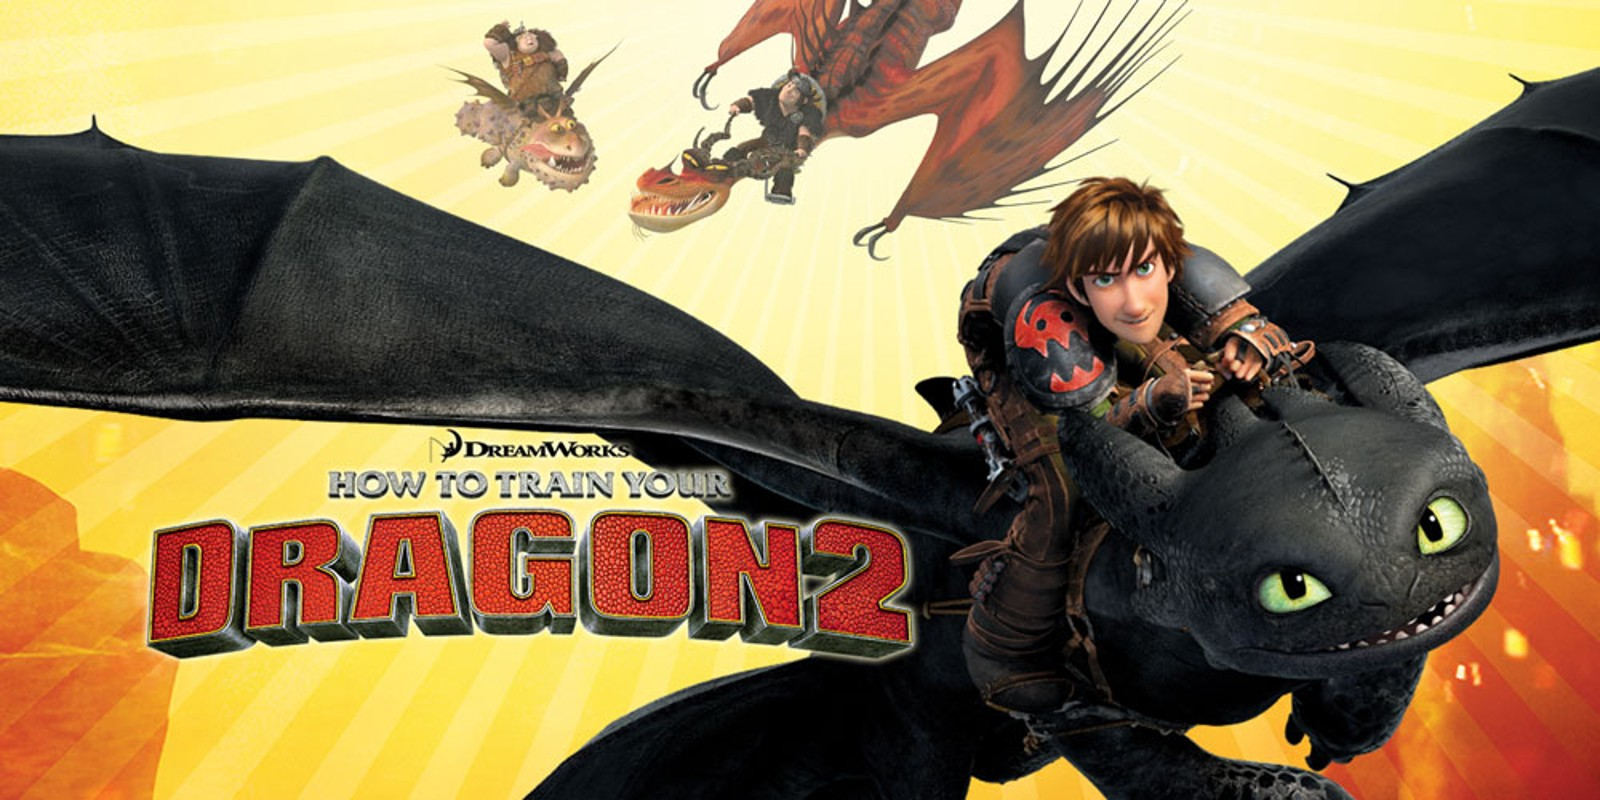 Cadeau Tips How To Train Your Dragon 2 | Wii U | Games | Nintendo